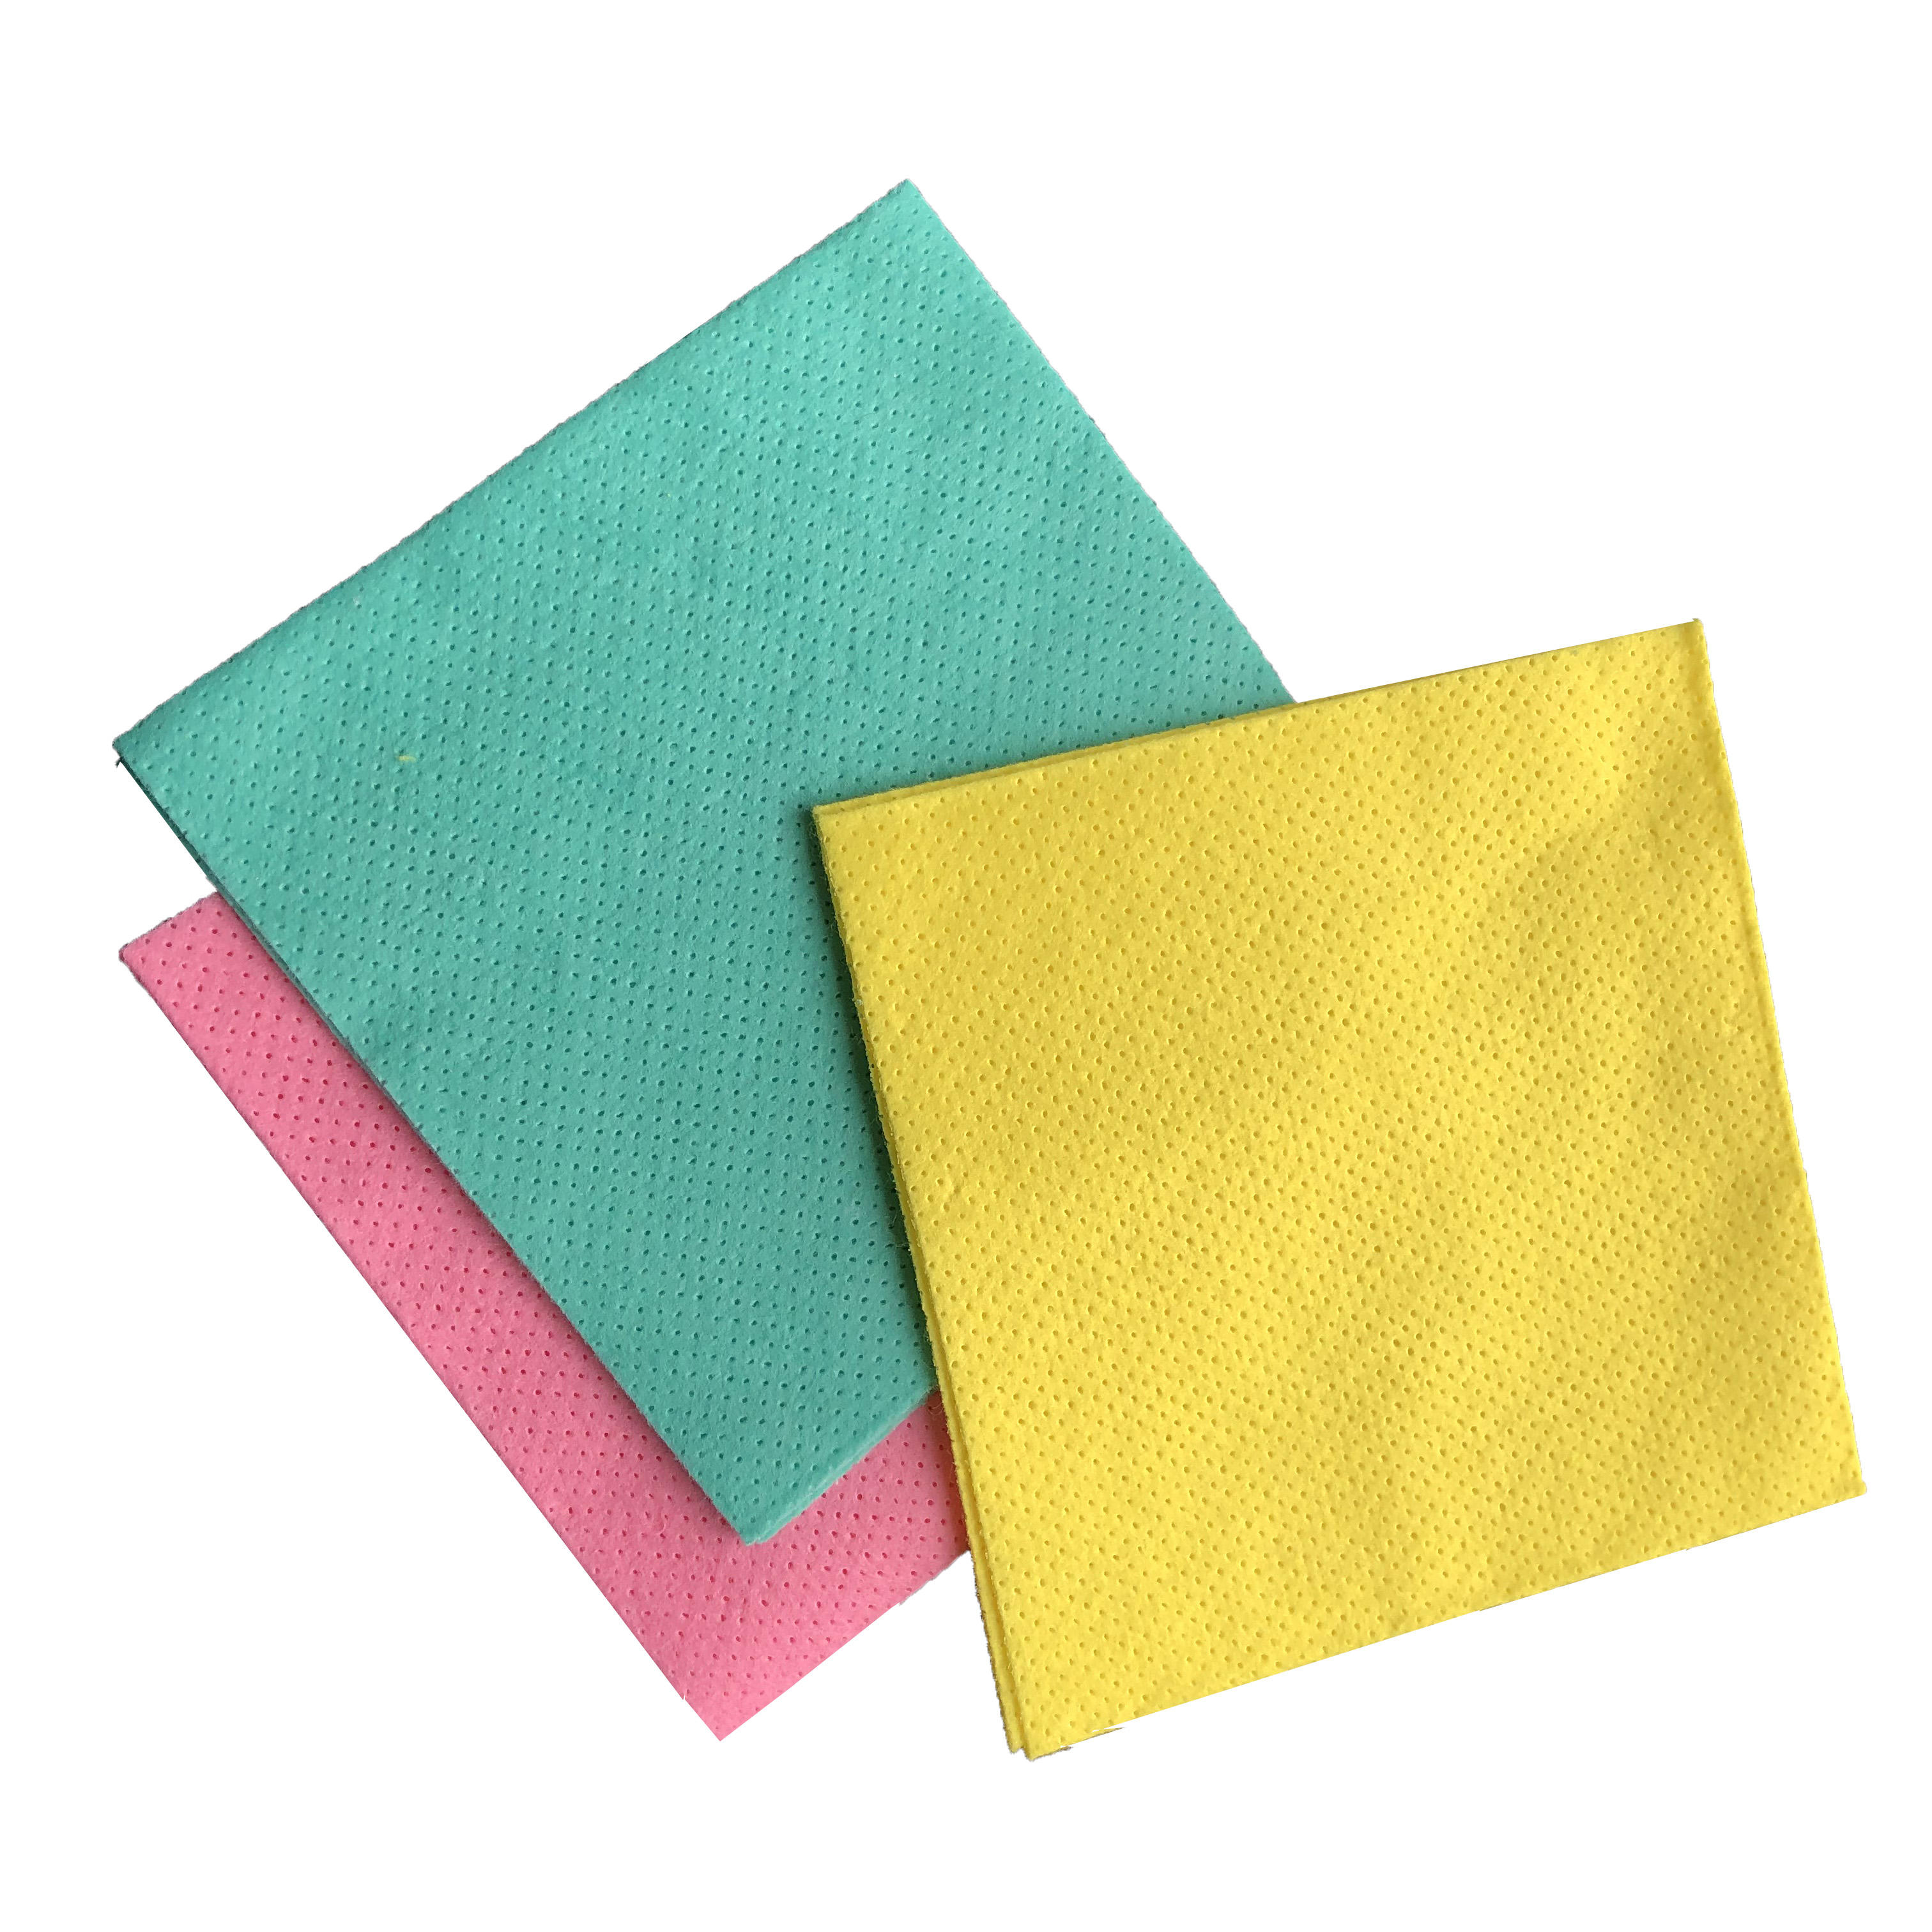 New products fabric print polyester screen printing white sticky felt nonwoven